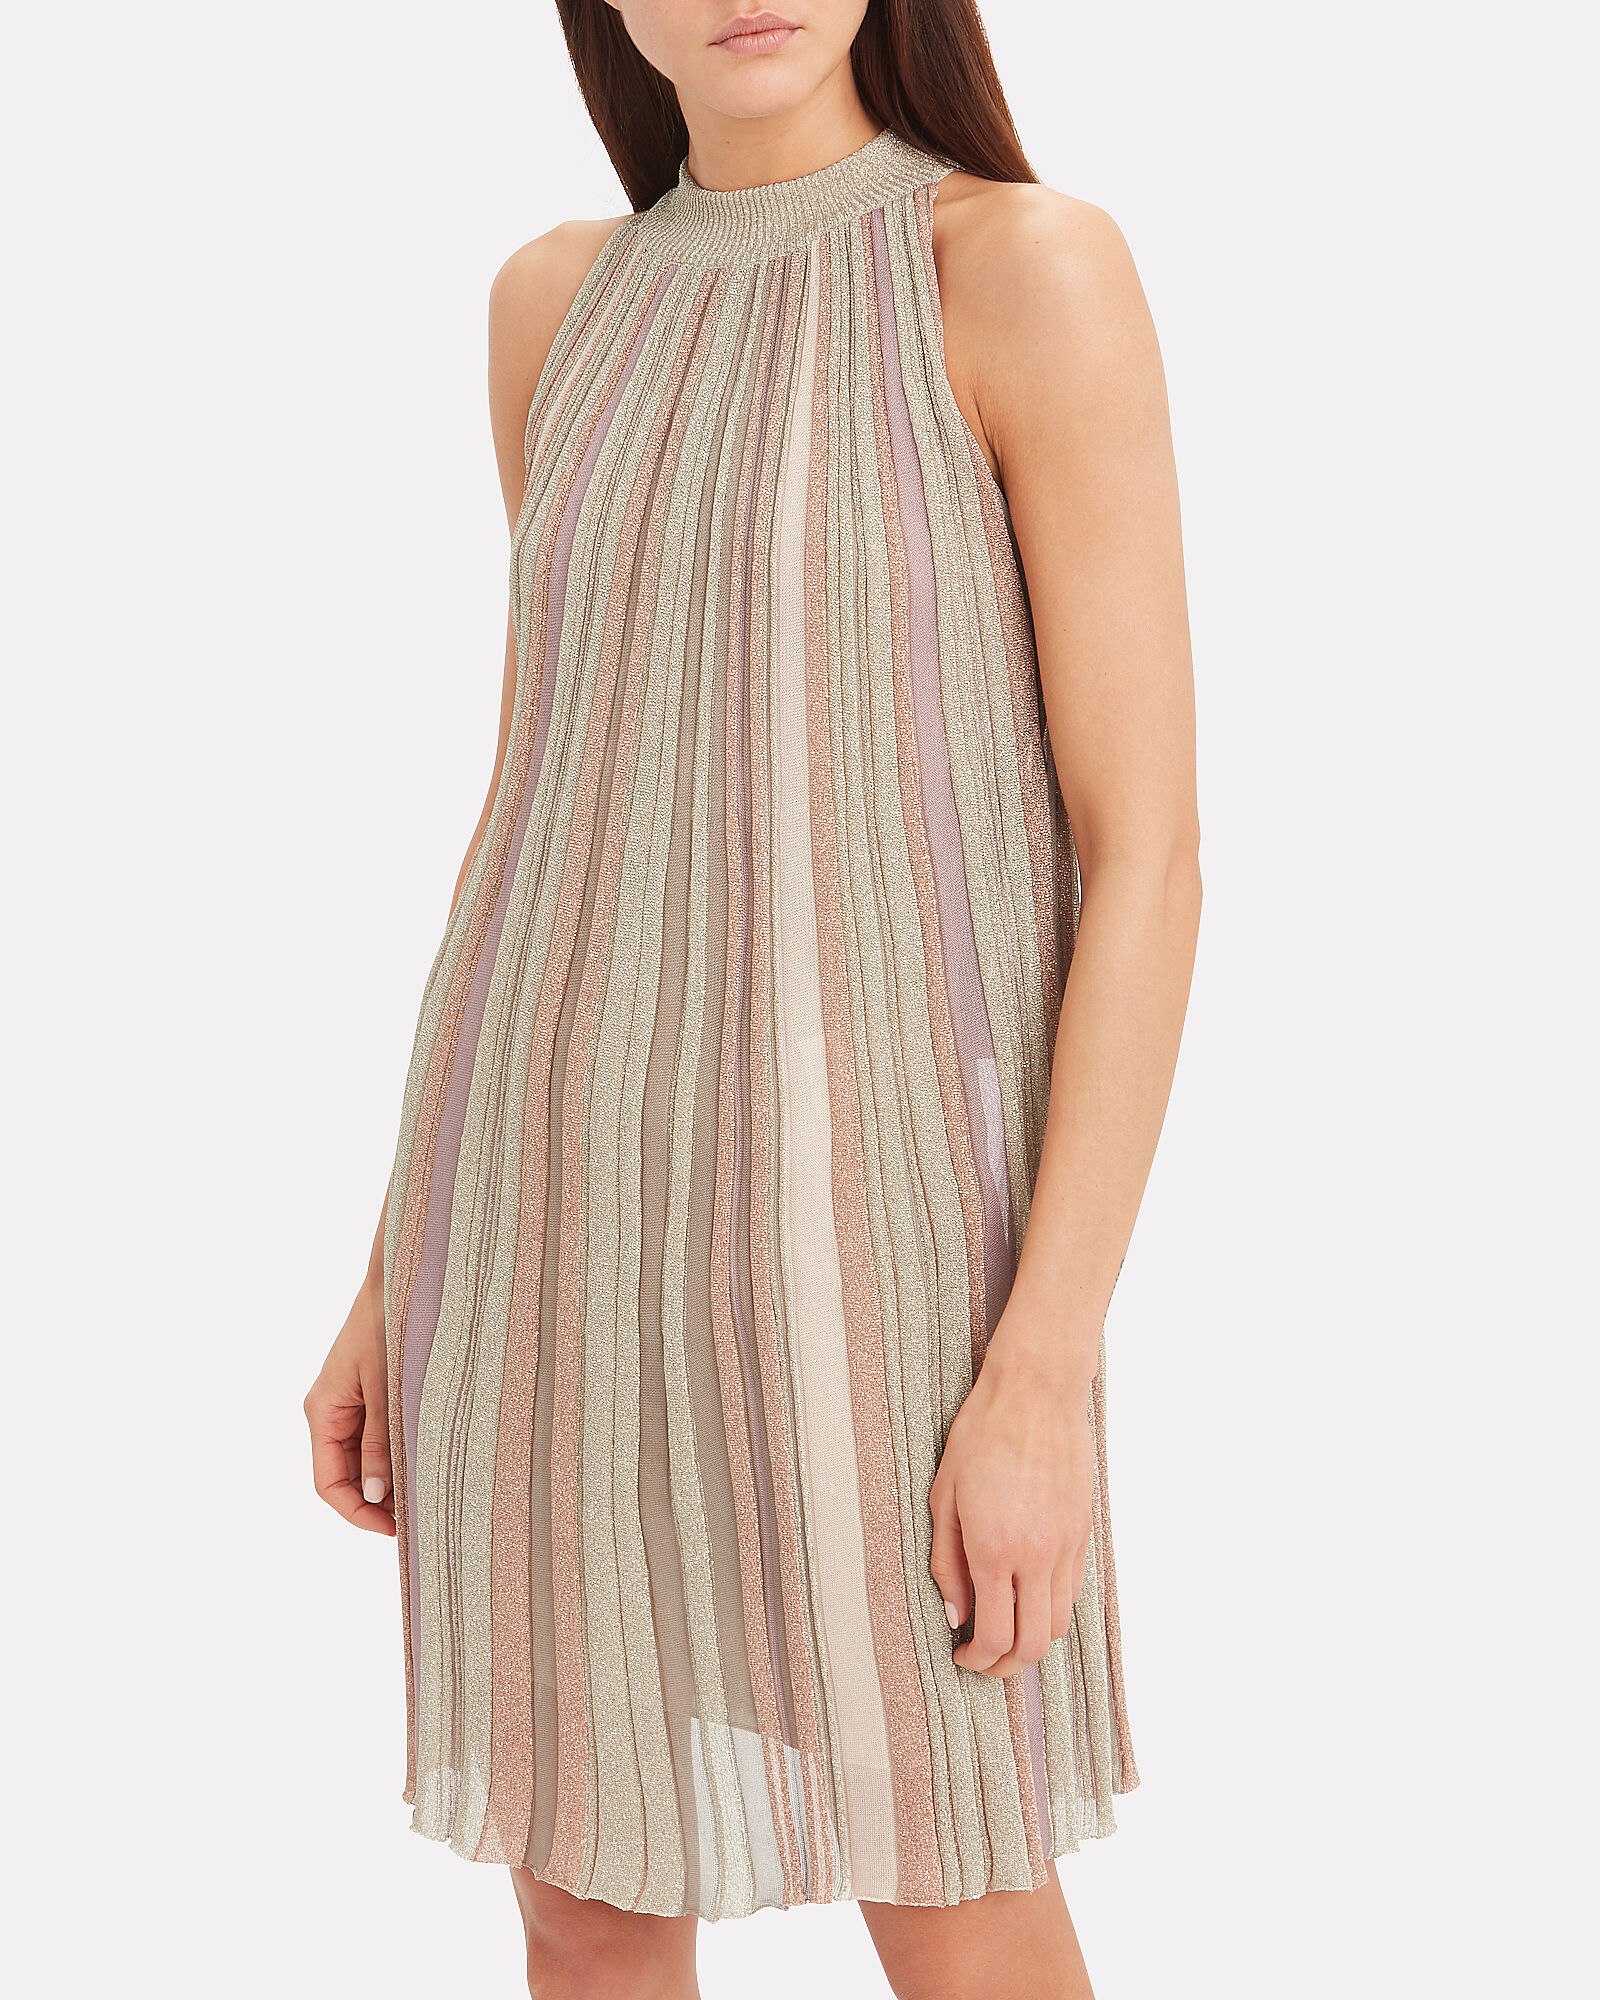 A-Line Striped Sleeveless Dress, BLUSH/METALLIC, hi-res